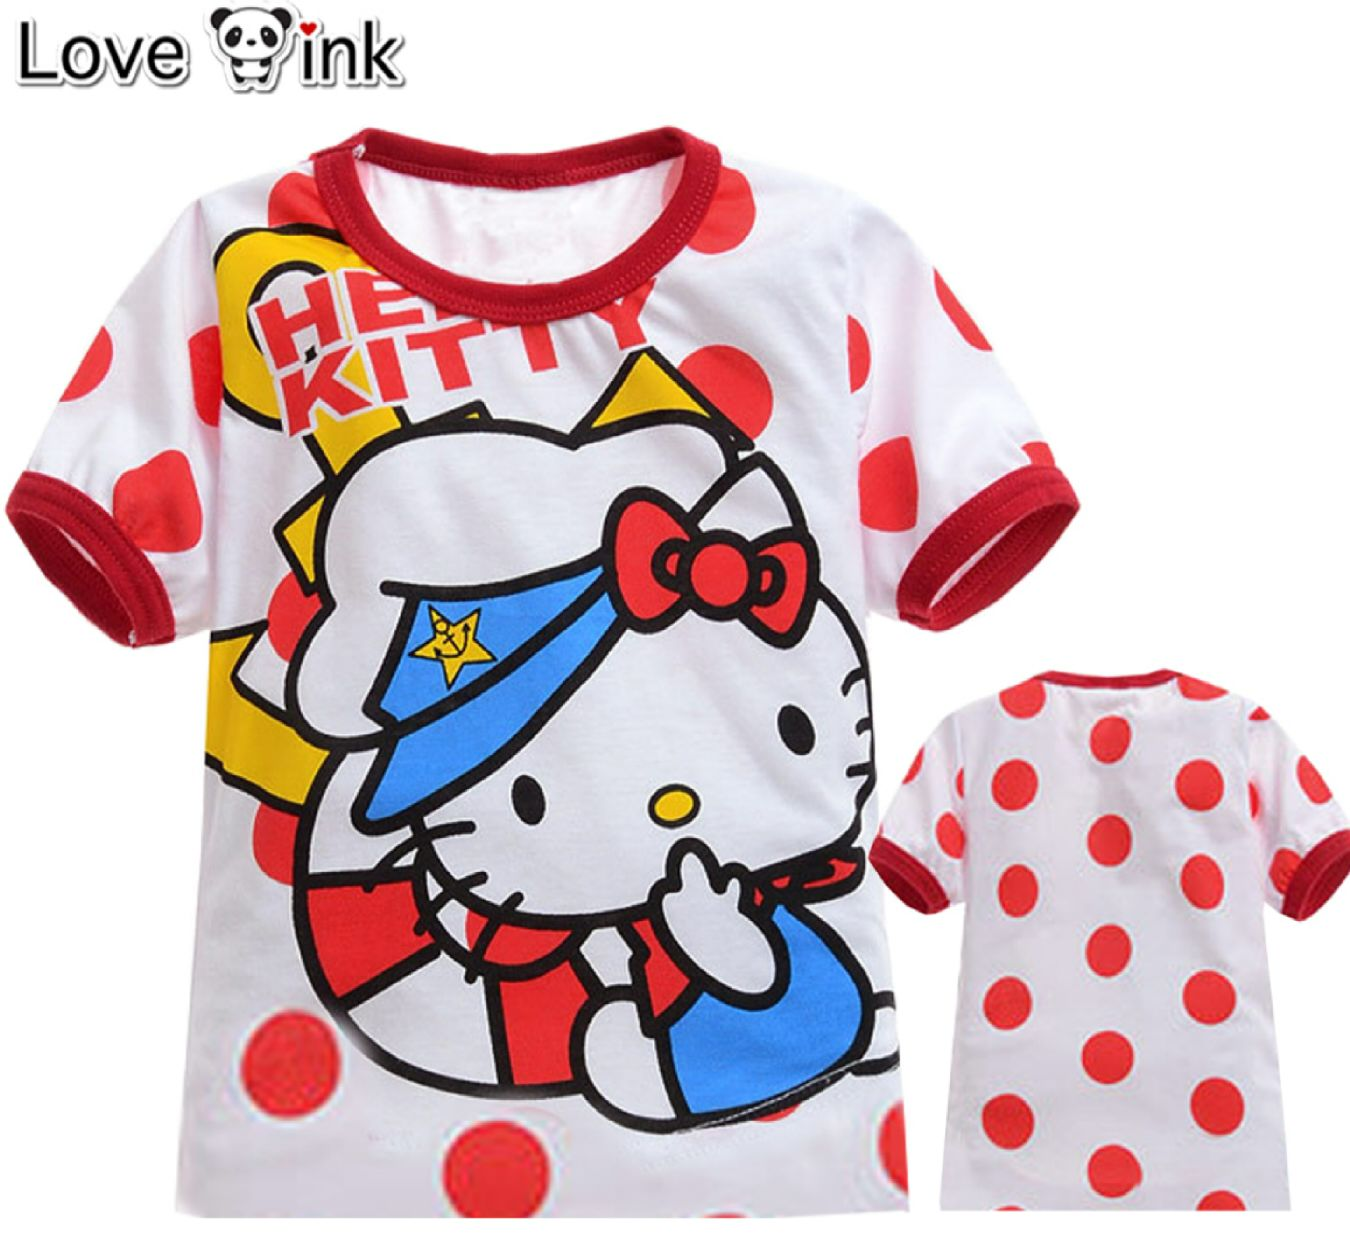 KSKD46 - Kaos Atasan Anak Hello Kitty Sailor Red Dot Murah